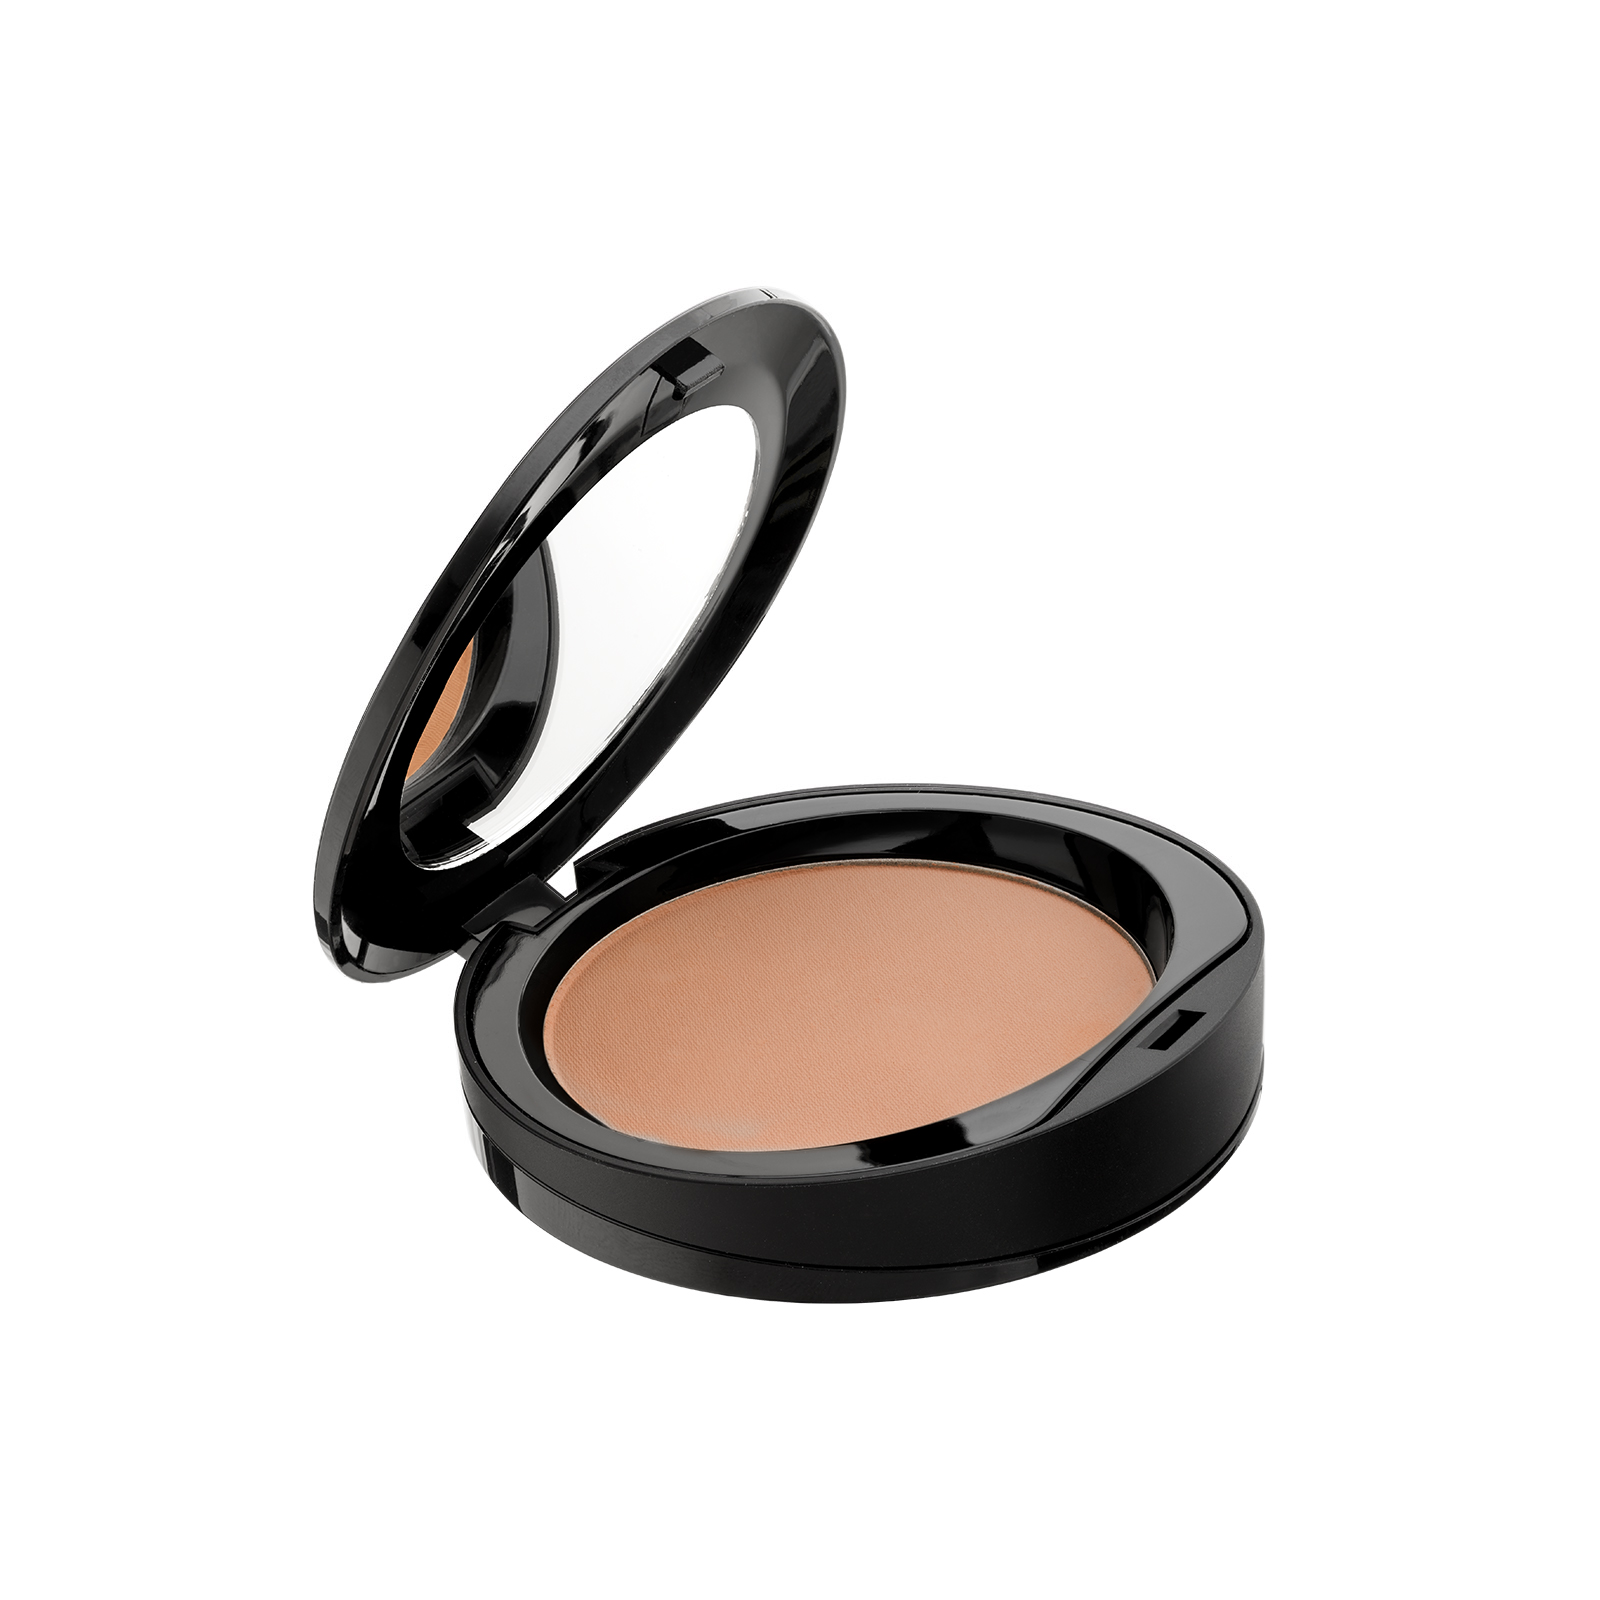 MAXI COVERAGE POWDER SPF 15 (08 Cinnamon)